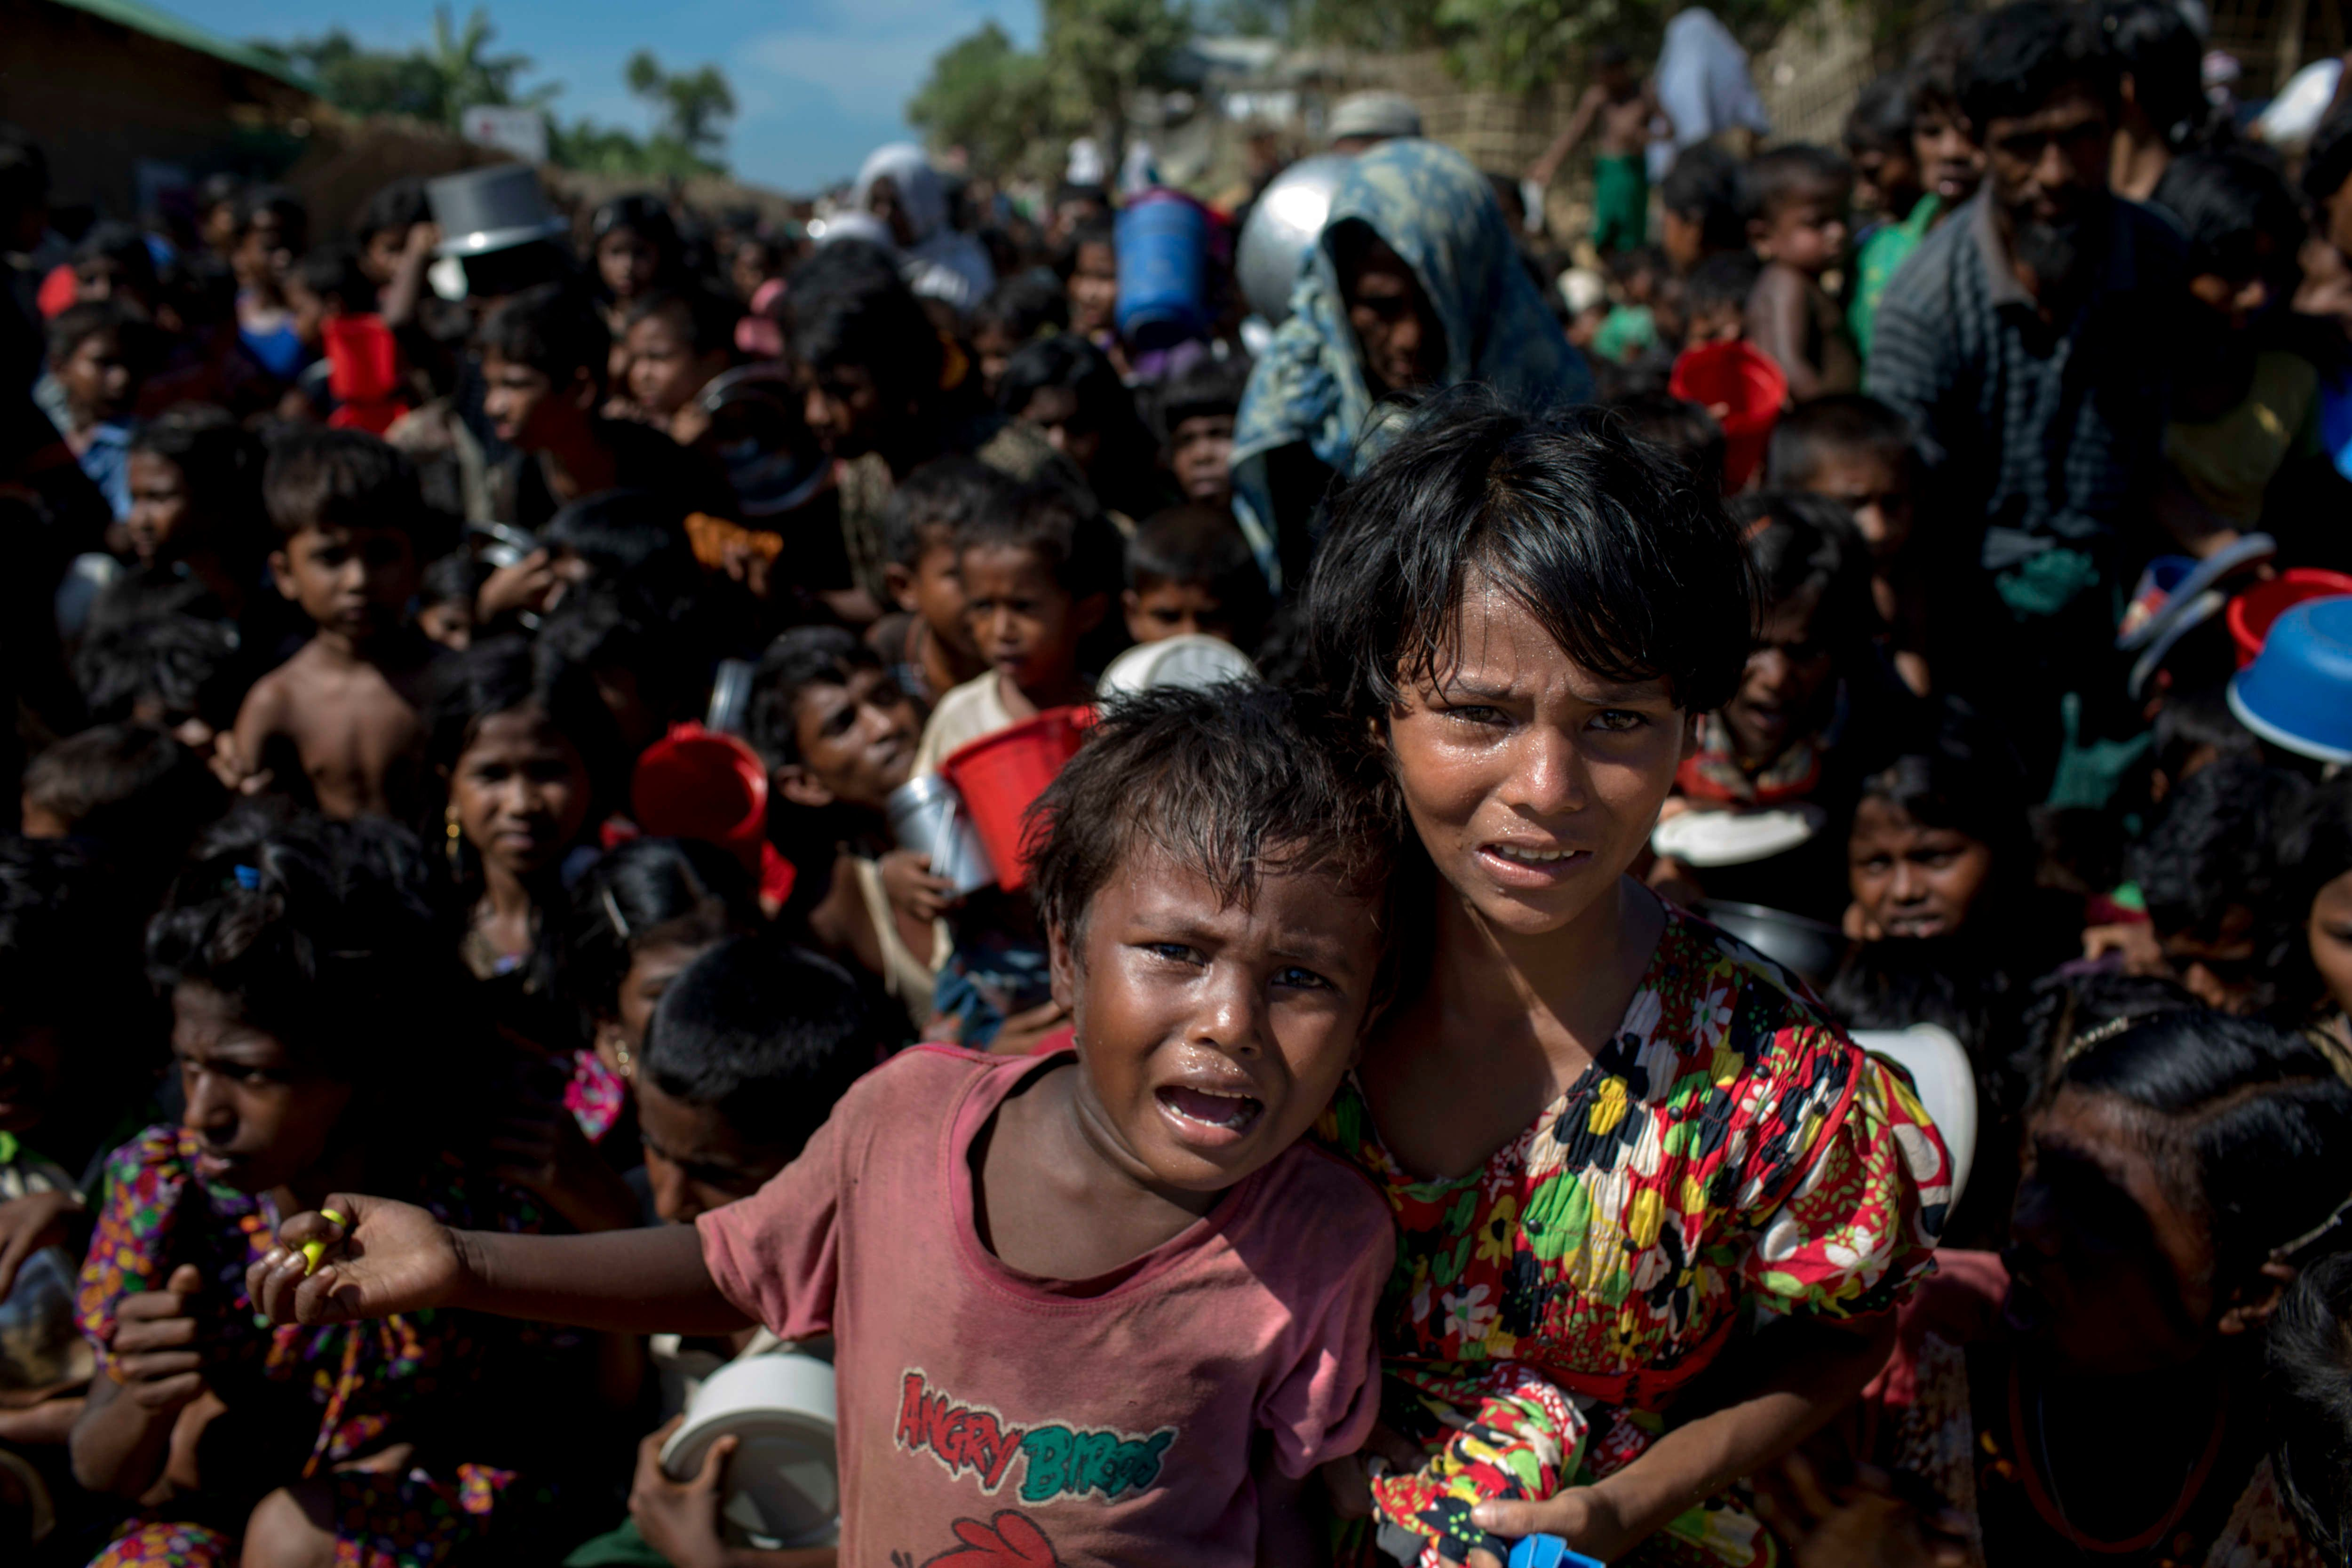 Rohingya refugee children wait in front of a food distribution center in a refugee camp in Bangladesh.